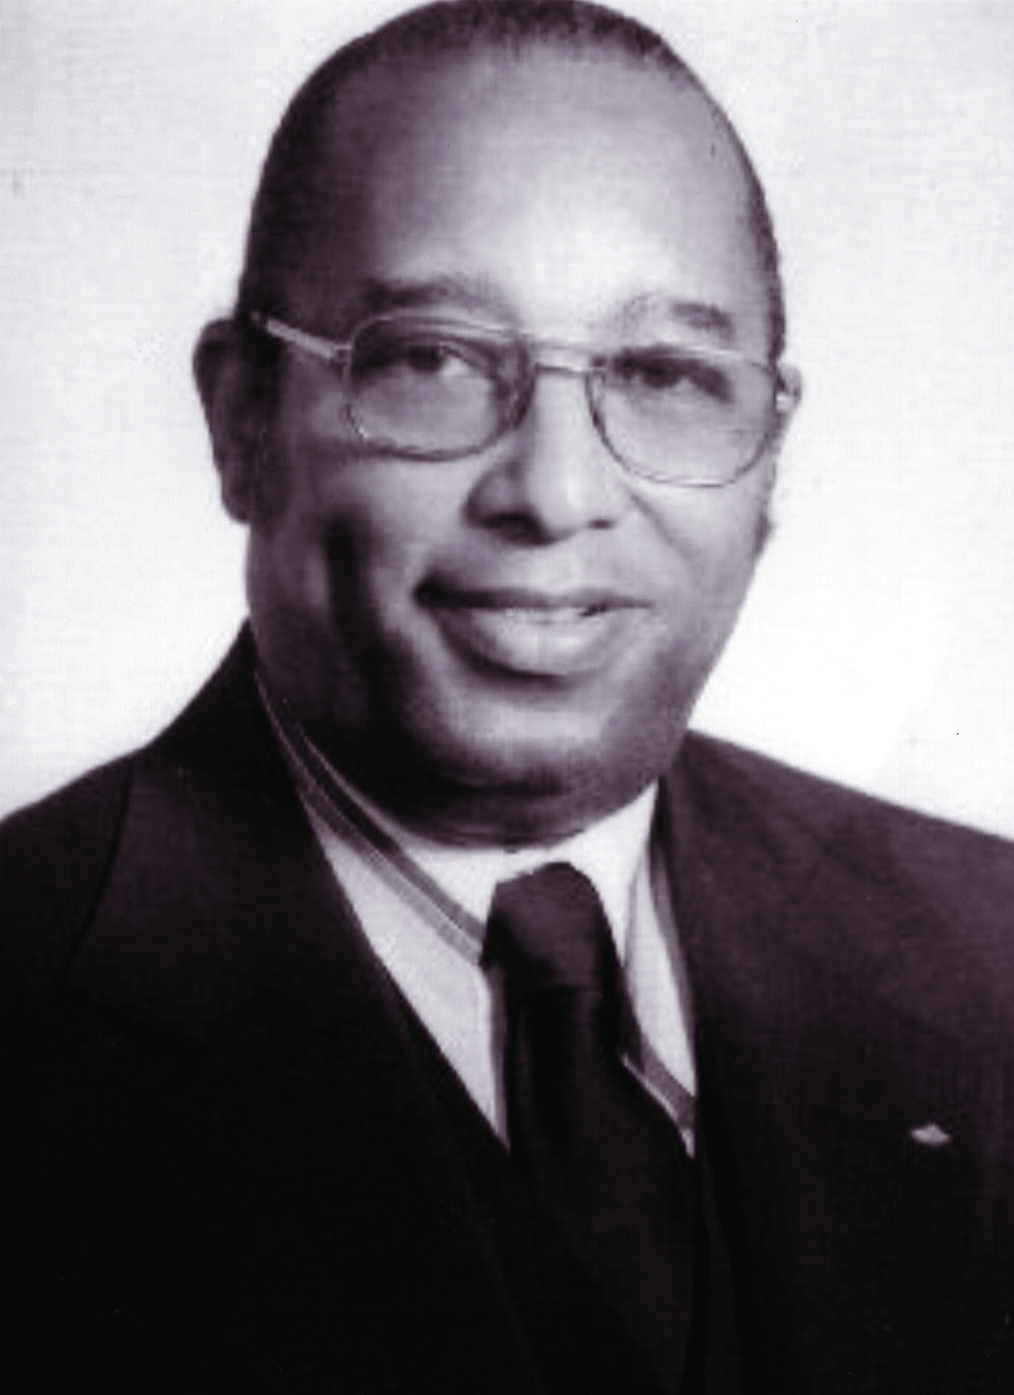 Photo of Bussey, Jr.